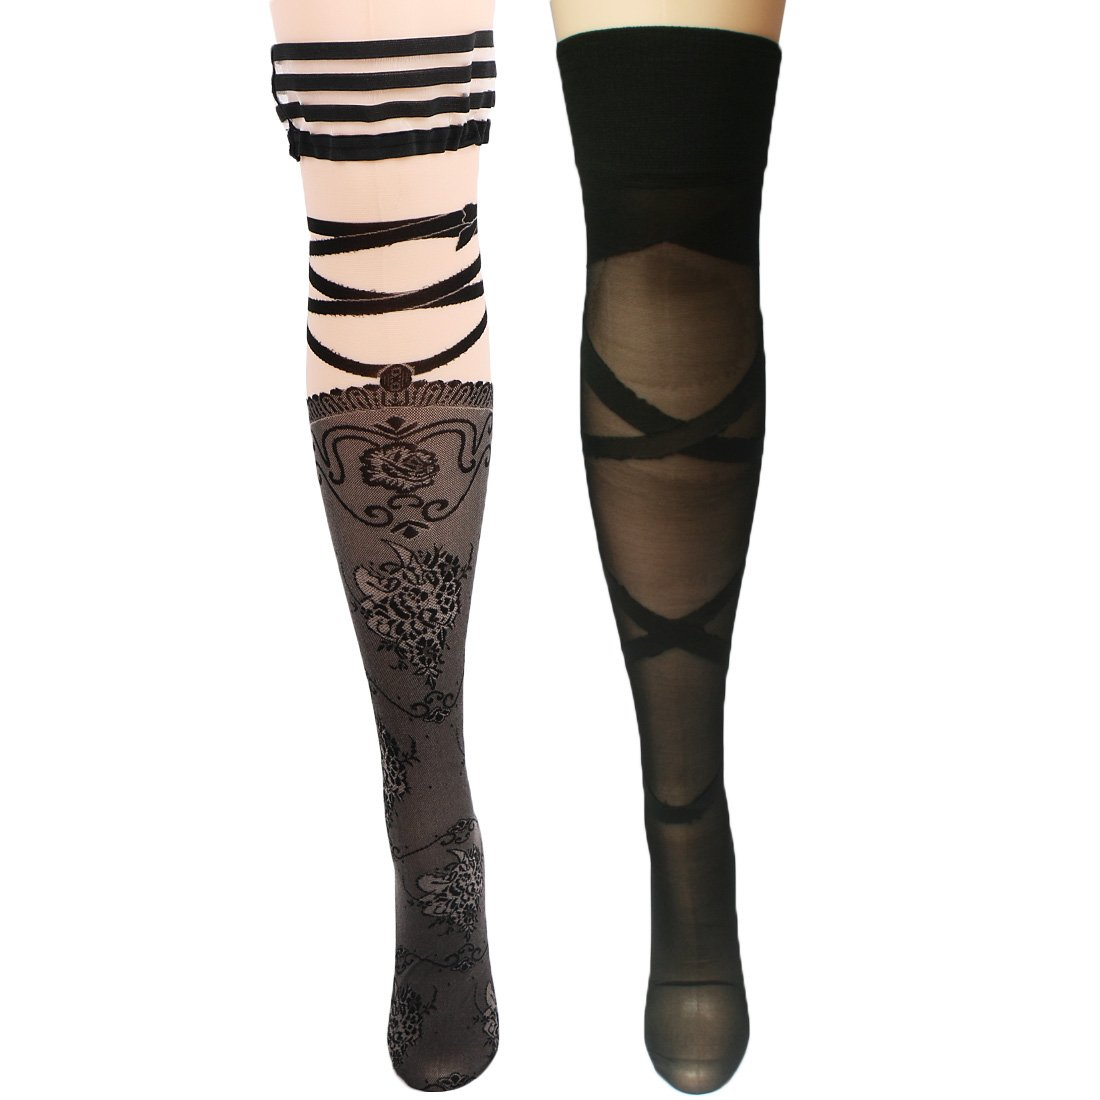 kilofly Thigh High Hold Ups Sheer Stockings Combo [2 Pairs Set] Stripes & Lace FTW393set2